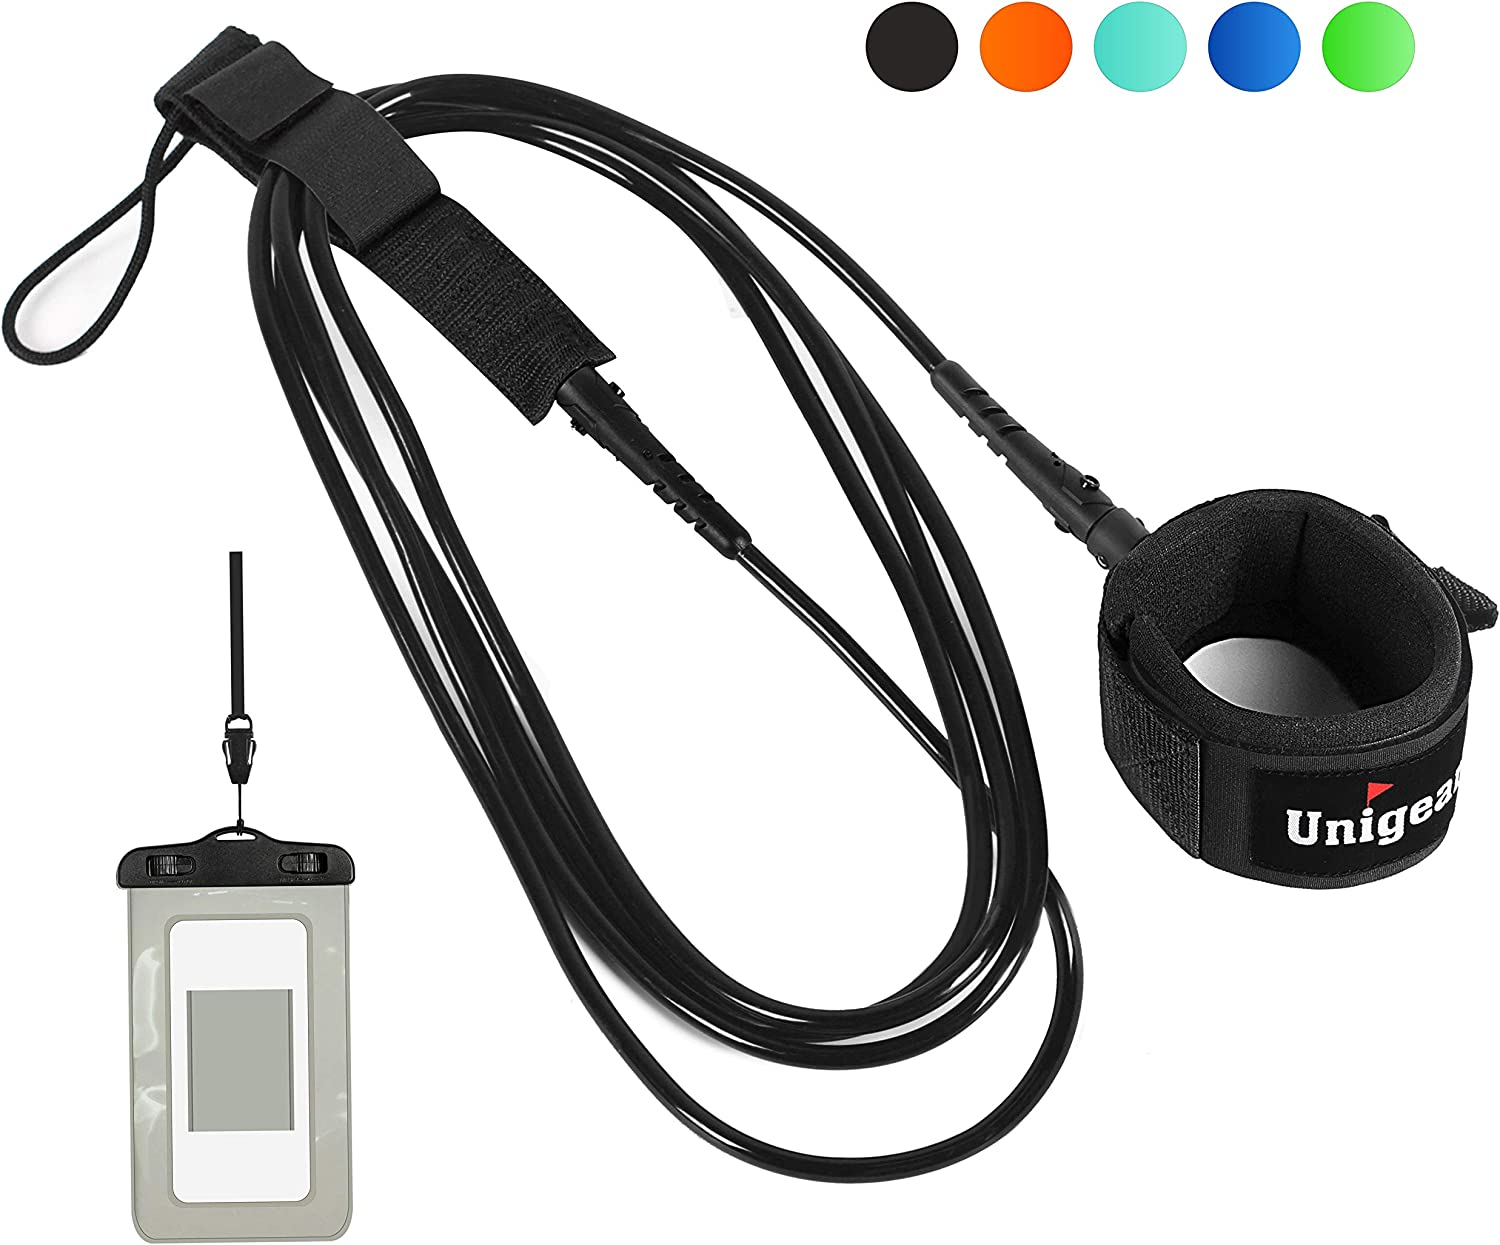 Unigear Premium Surfboard Sup Leash for Inflatable Stand up Paddle Board with Waterproof Wallet